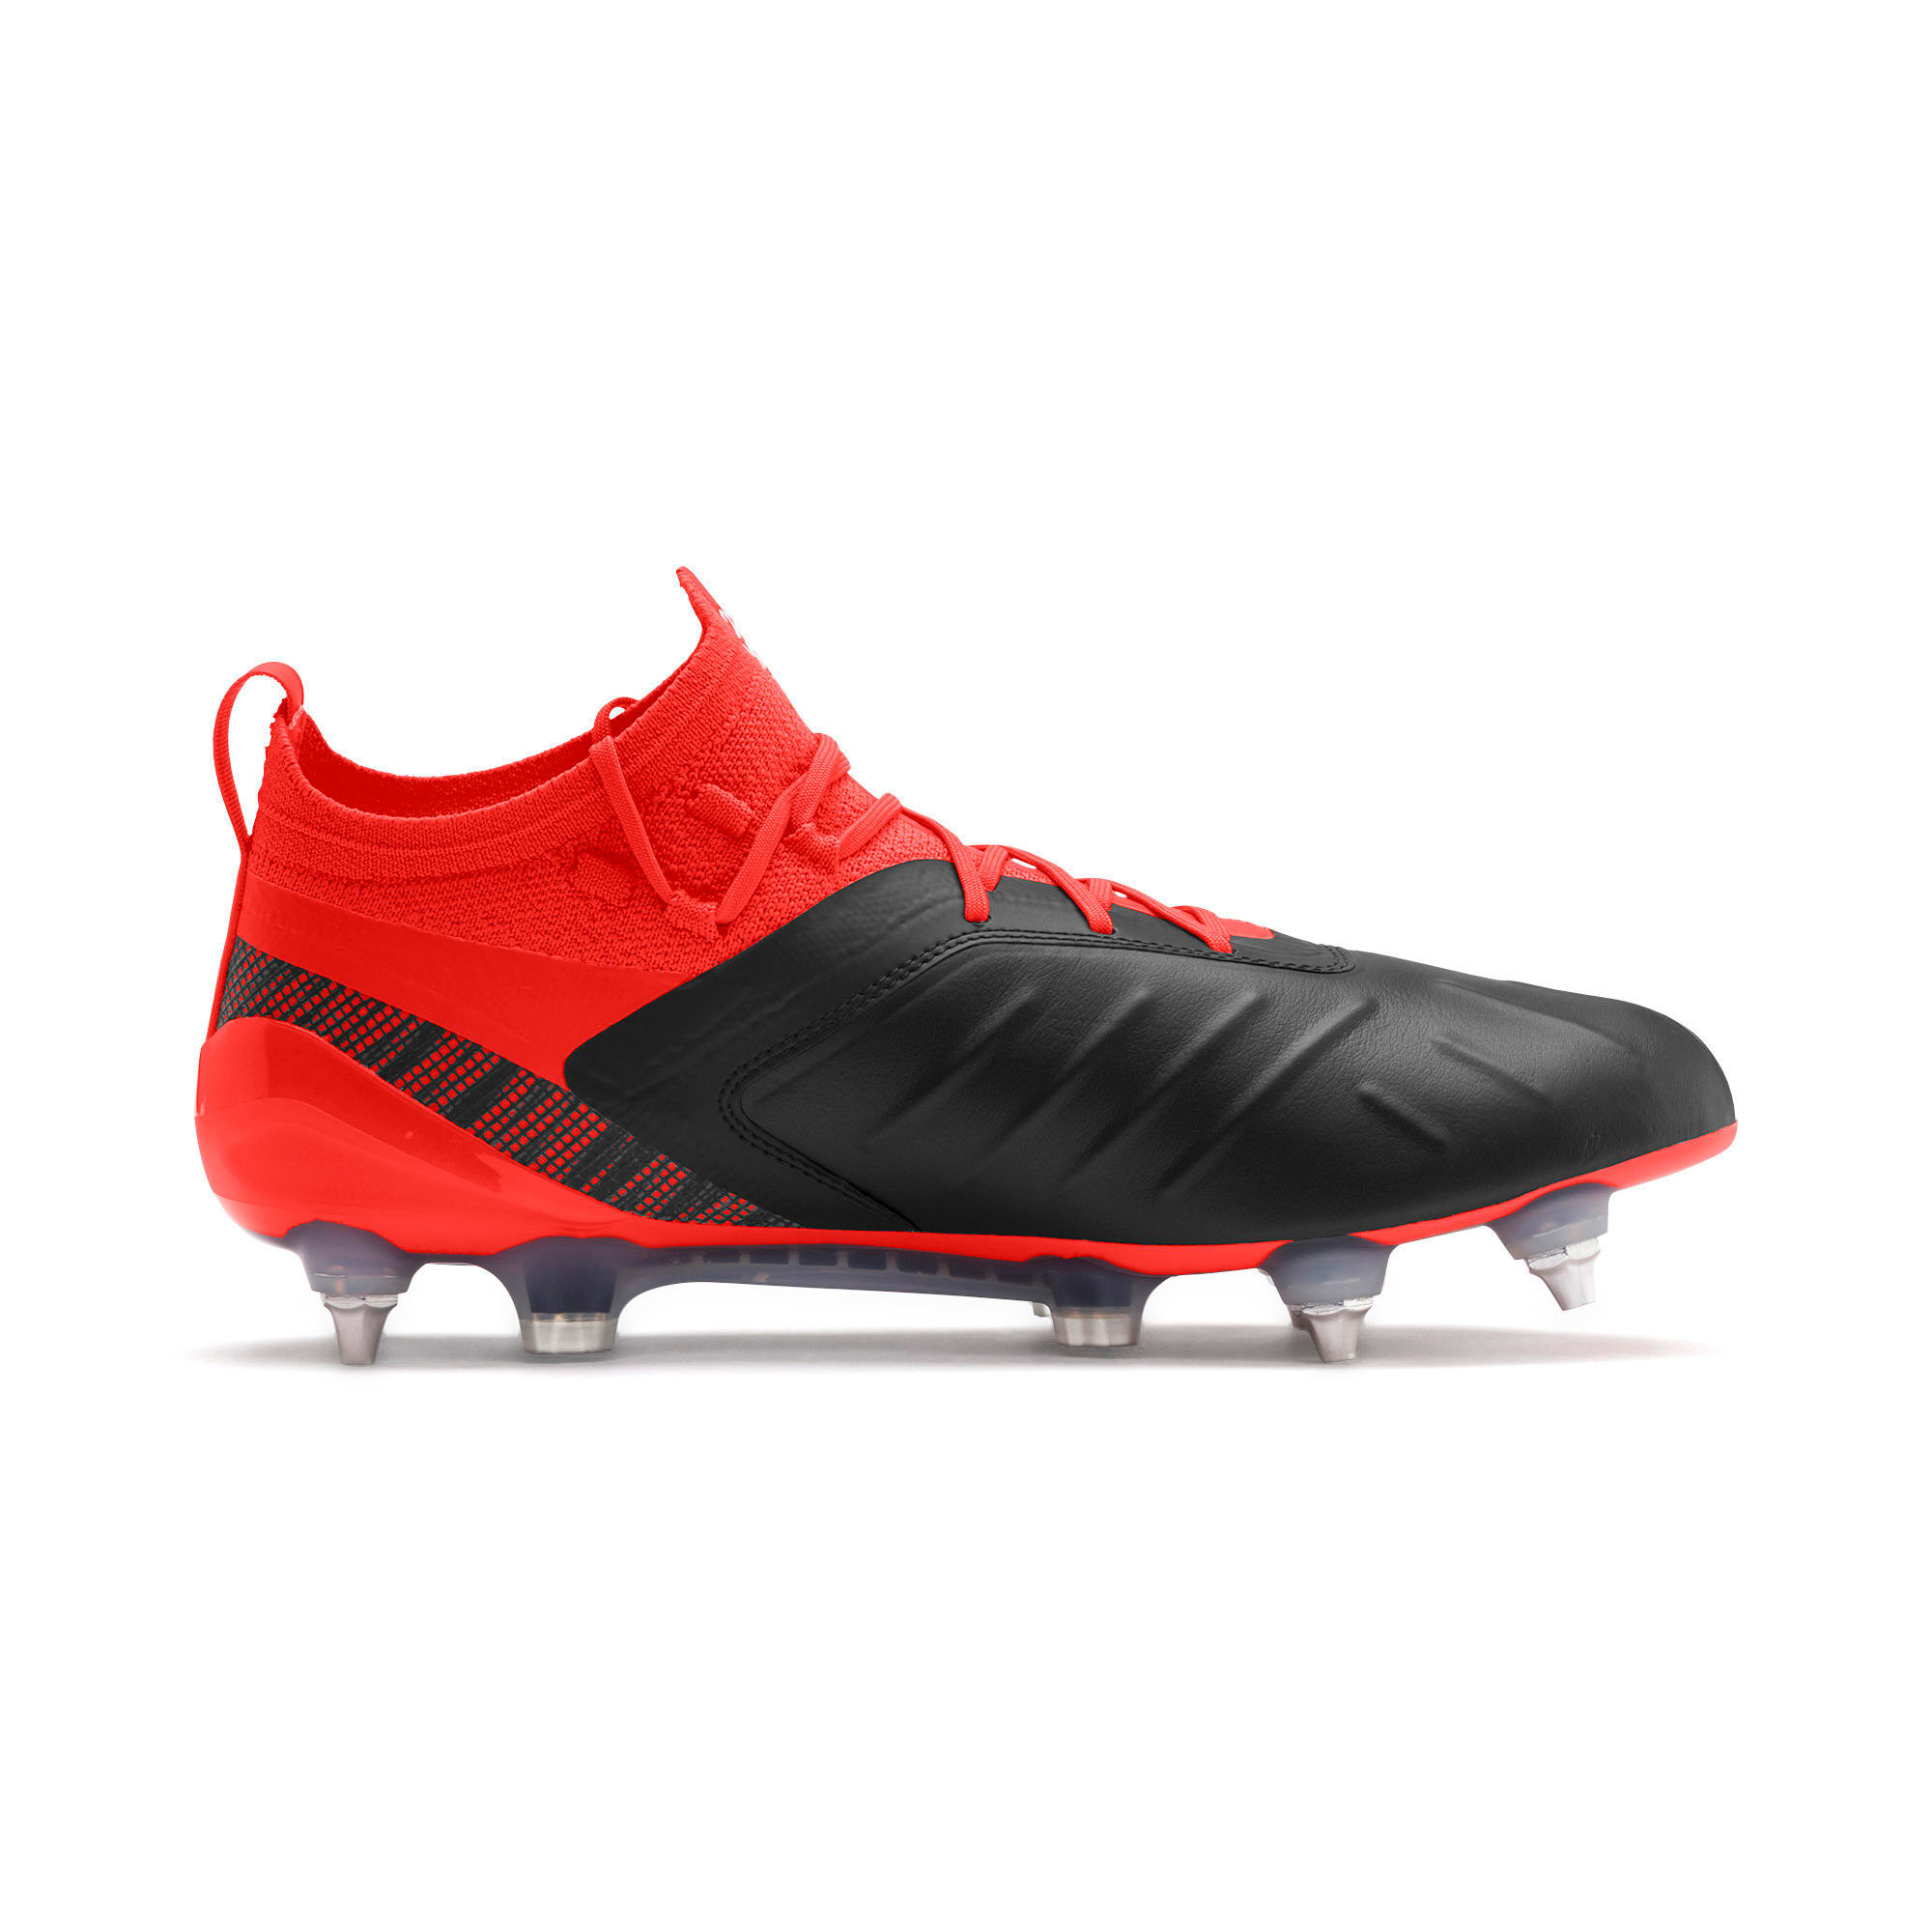 Thumbnail 6 of PUMA ONE 5.1 MxSG voetbalschoenen, Black-Nrgy Red-Aged Silver, medium